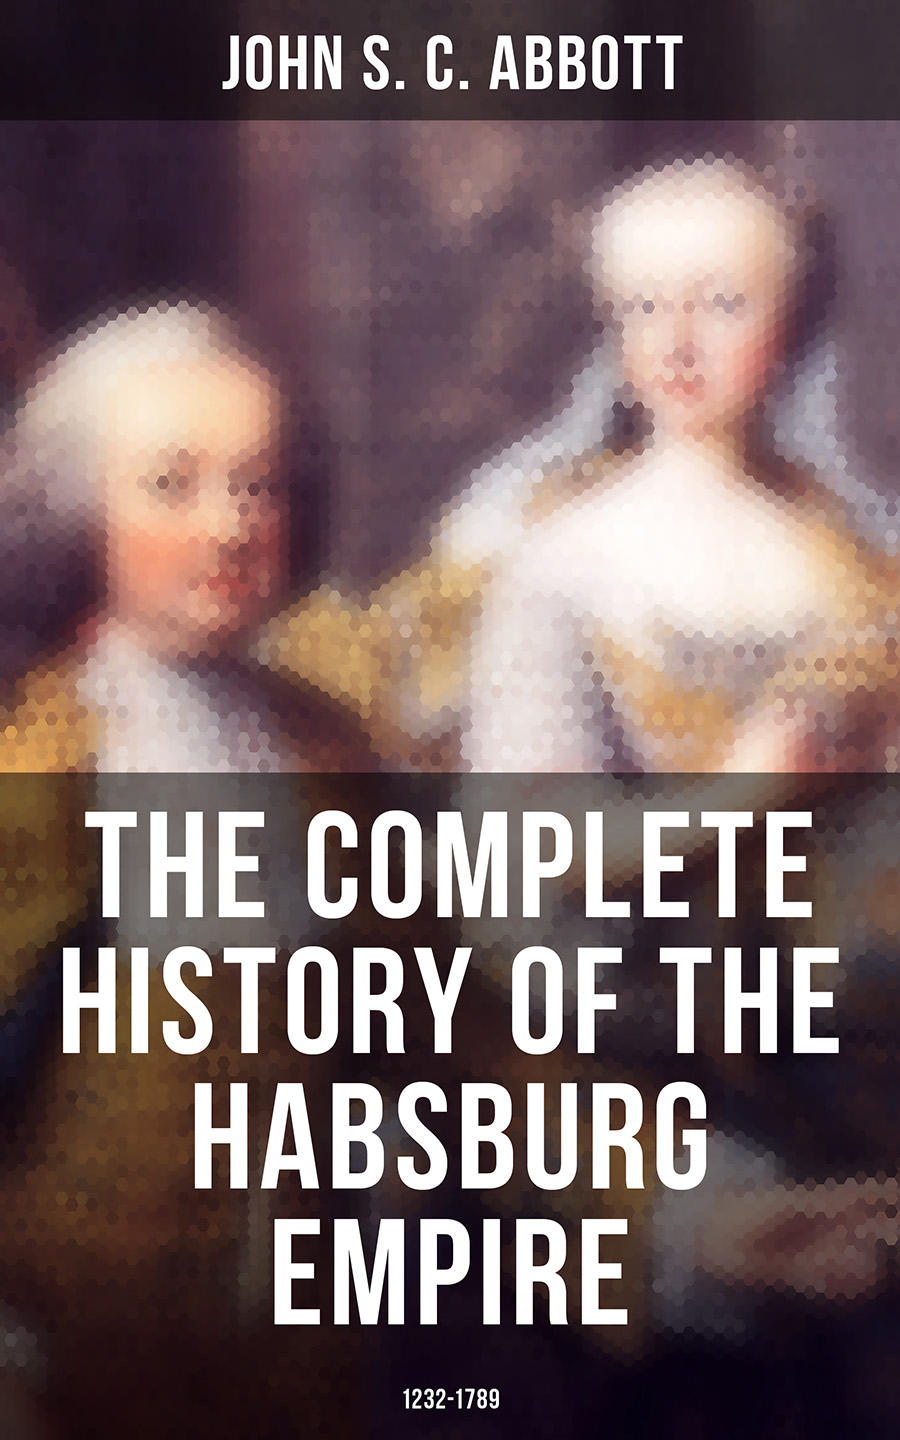 John S. C. Abbott The Complete History of the Habsburg Empire: 1232-1789 цена и фото